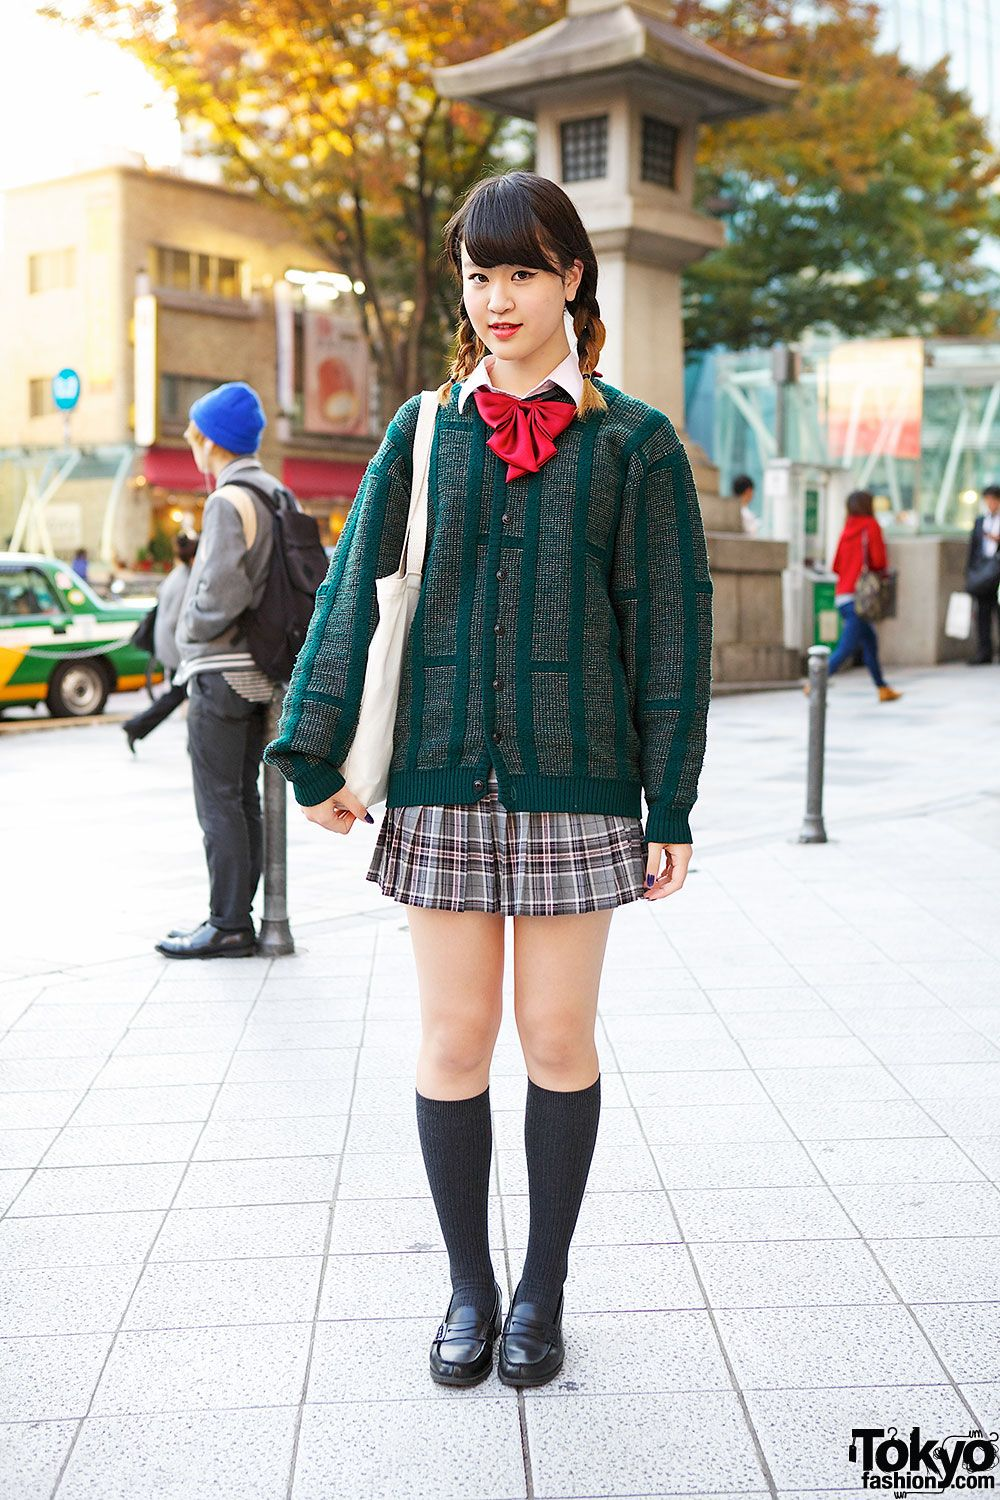 Cute 17 Year Old Girls harajuku girl in plaid skirt, green cardigan, loafers & red bow